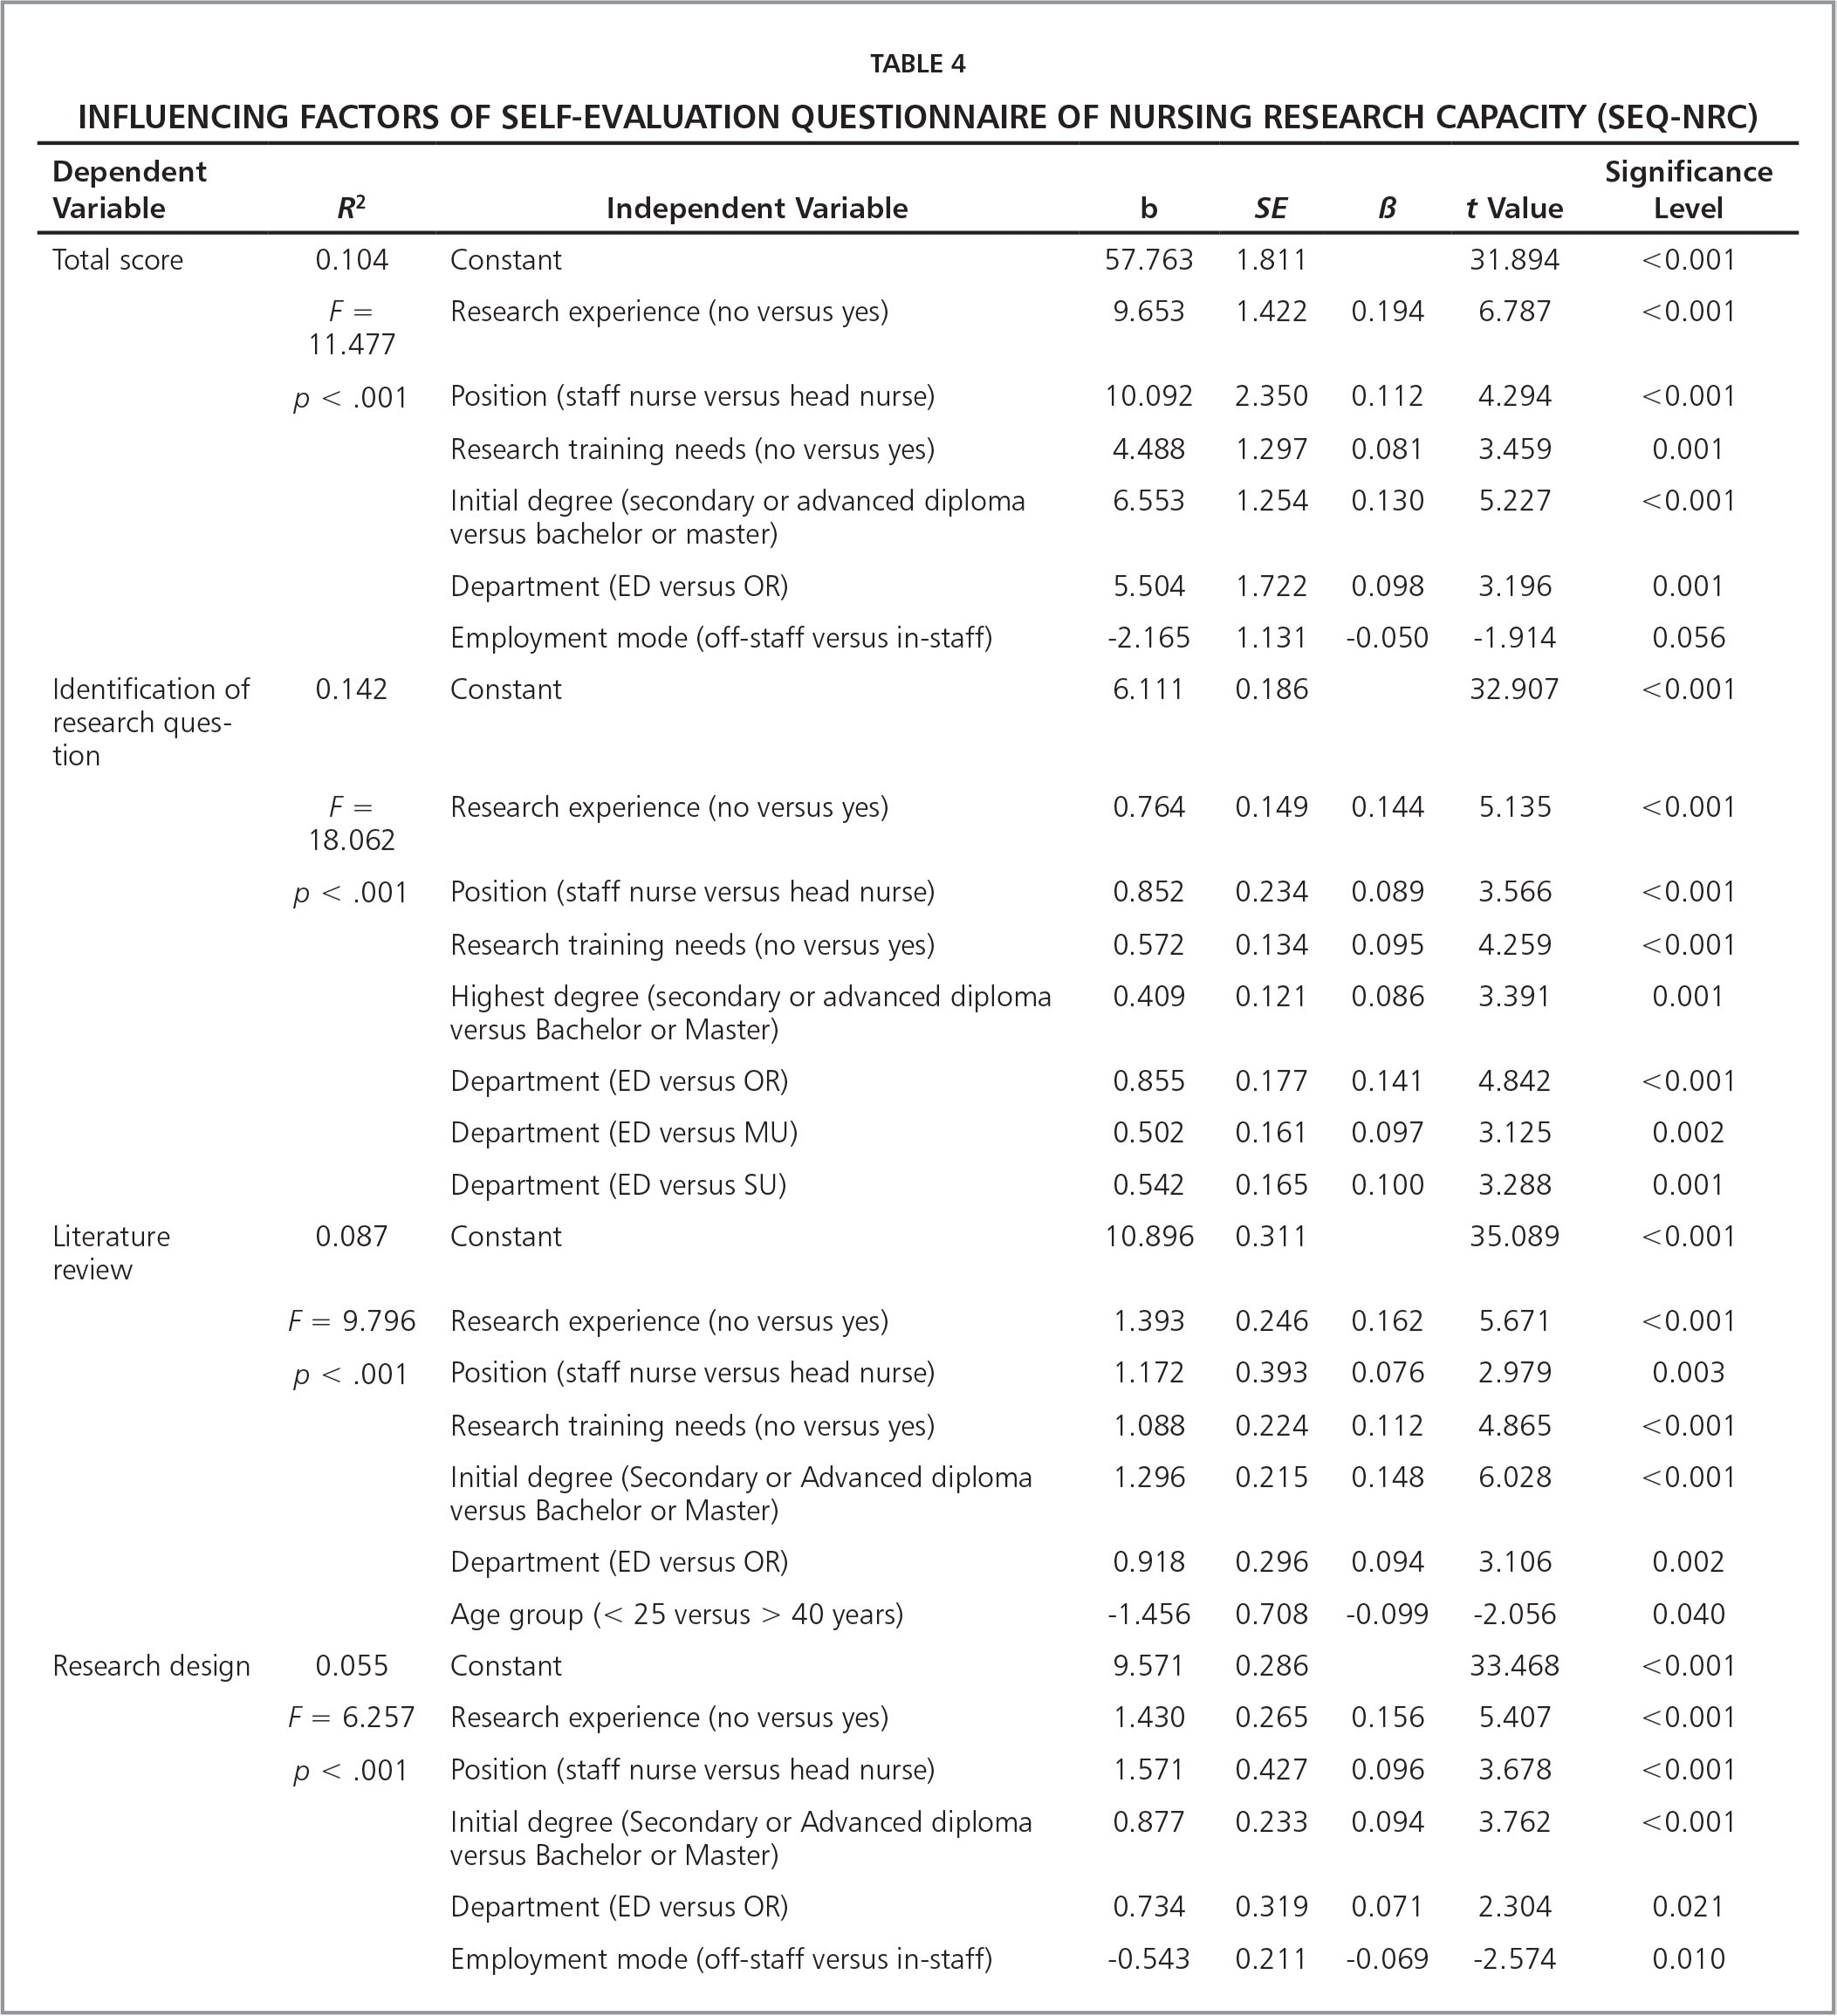 Influencing Factors of Self-Evaluation Questionnaire of Nursing Research Capacity (SEQ-NRC)